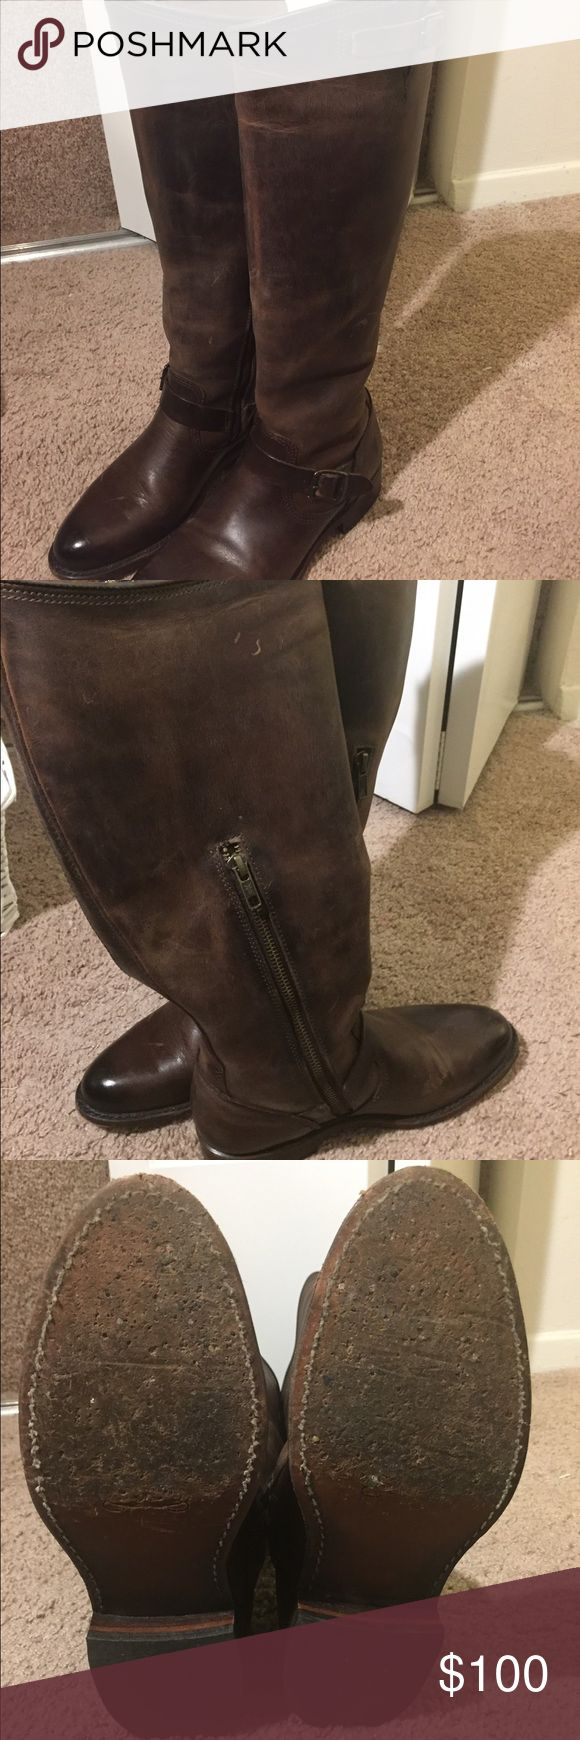 Women's Brown Frye Riding Boots Only worn a few times and have a natural rustic look. I normally wear a size 7.5/8 and the size 7 fit great! The bottom is scuffed up a little but the sole is in great condition. Will accept offers! Frye Shoes Winter & Rain Boots